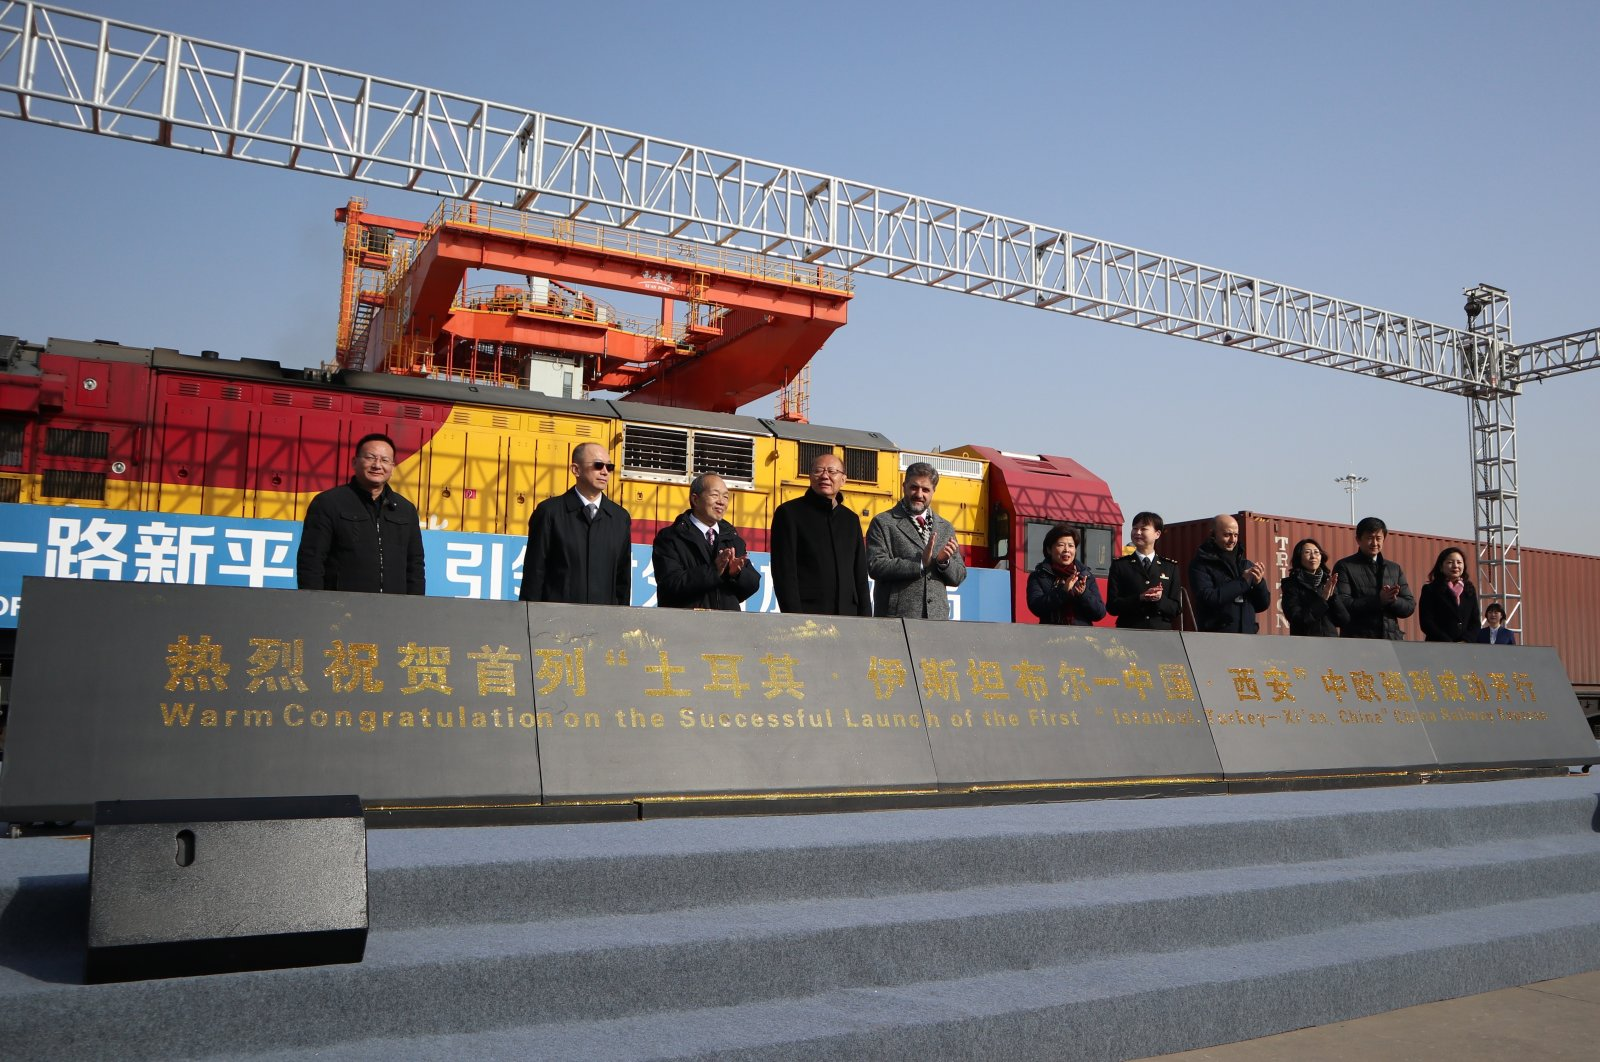 Turkish and Chinese officials on stage during the welcoming ceremony for the first Turkish freight train to arrive in Xi'an, the capital city of Shaanxi province in central China, Dec. 23, 2020. (IHA Photo)